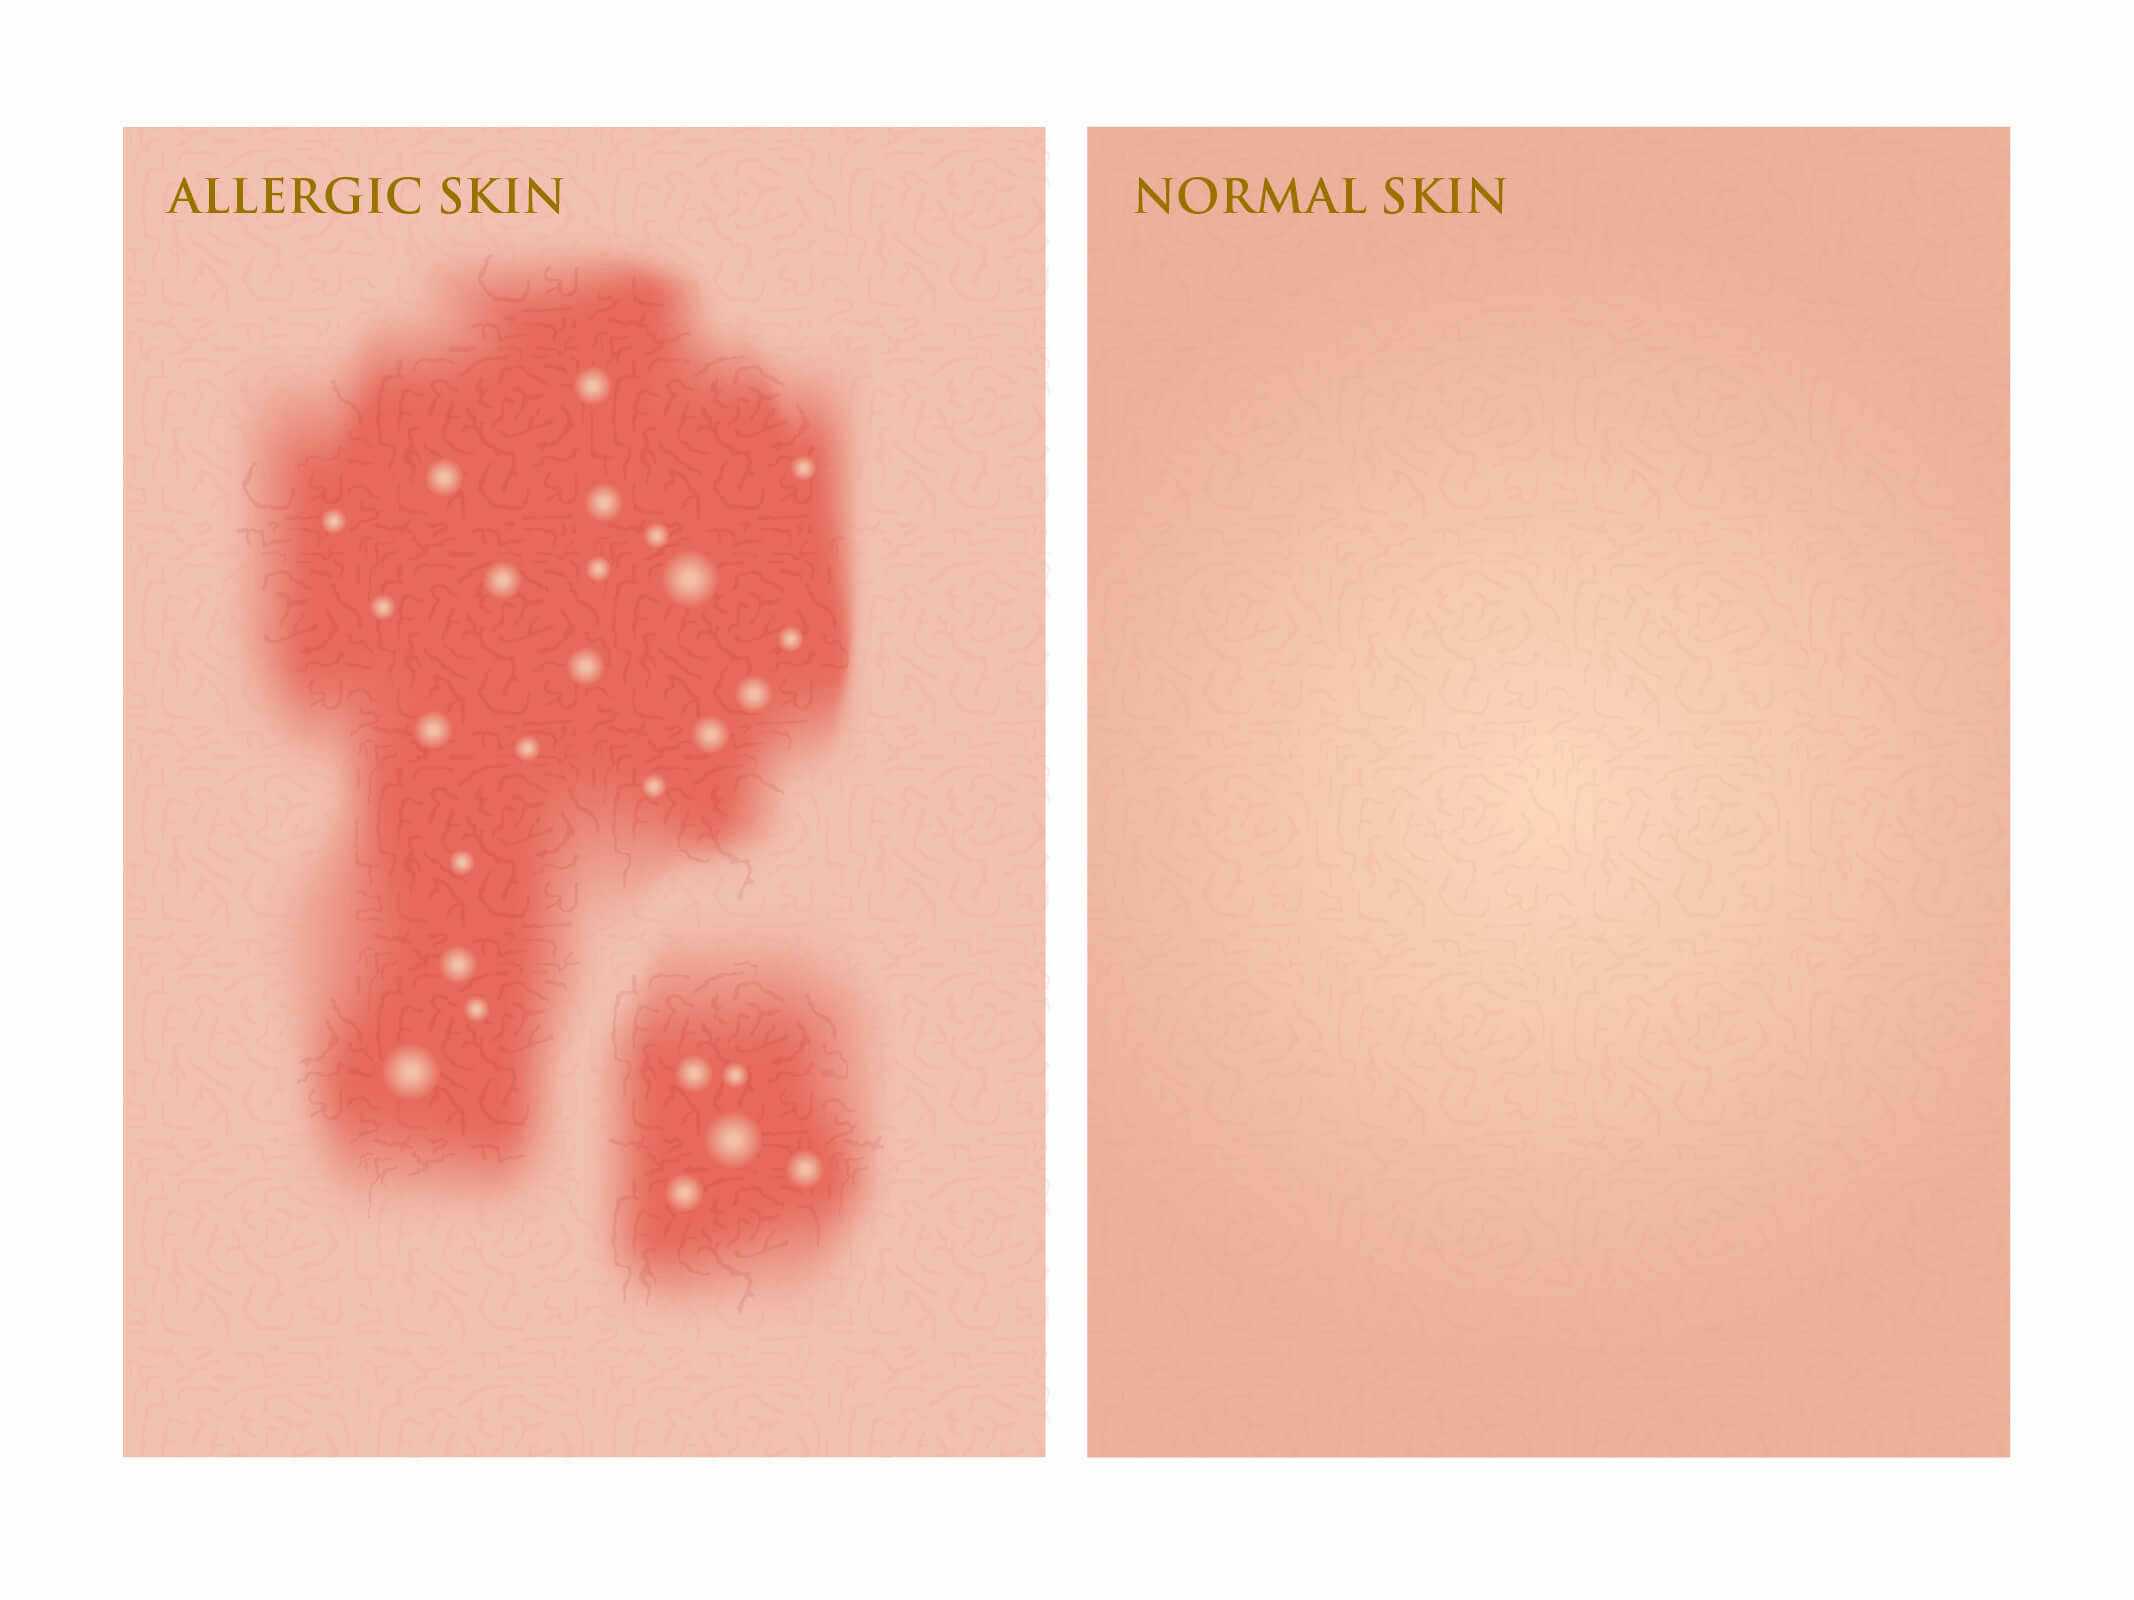 allergic vs normal skin